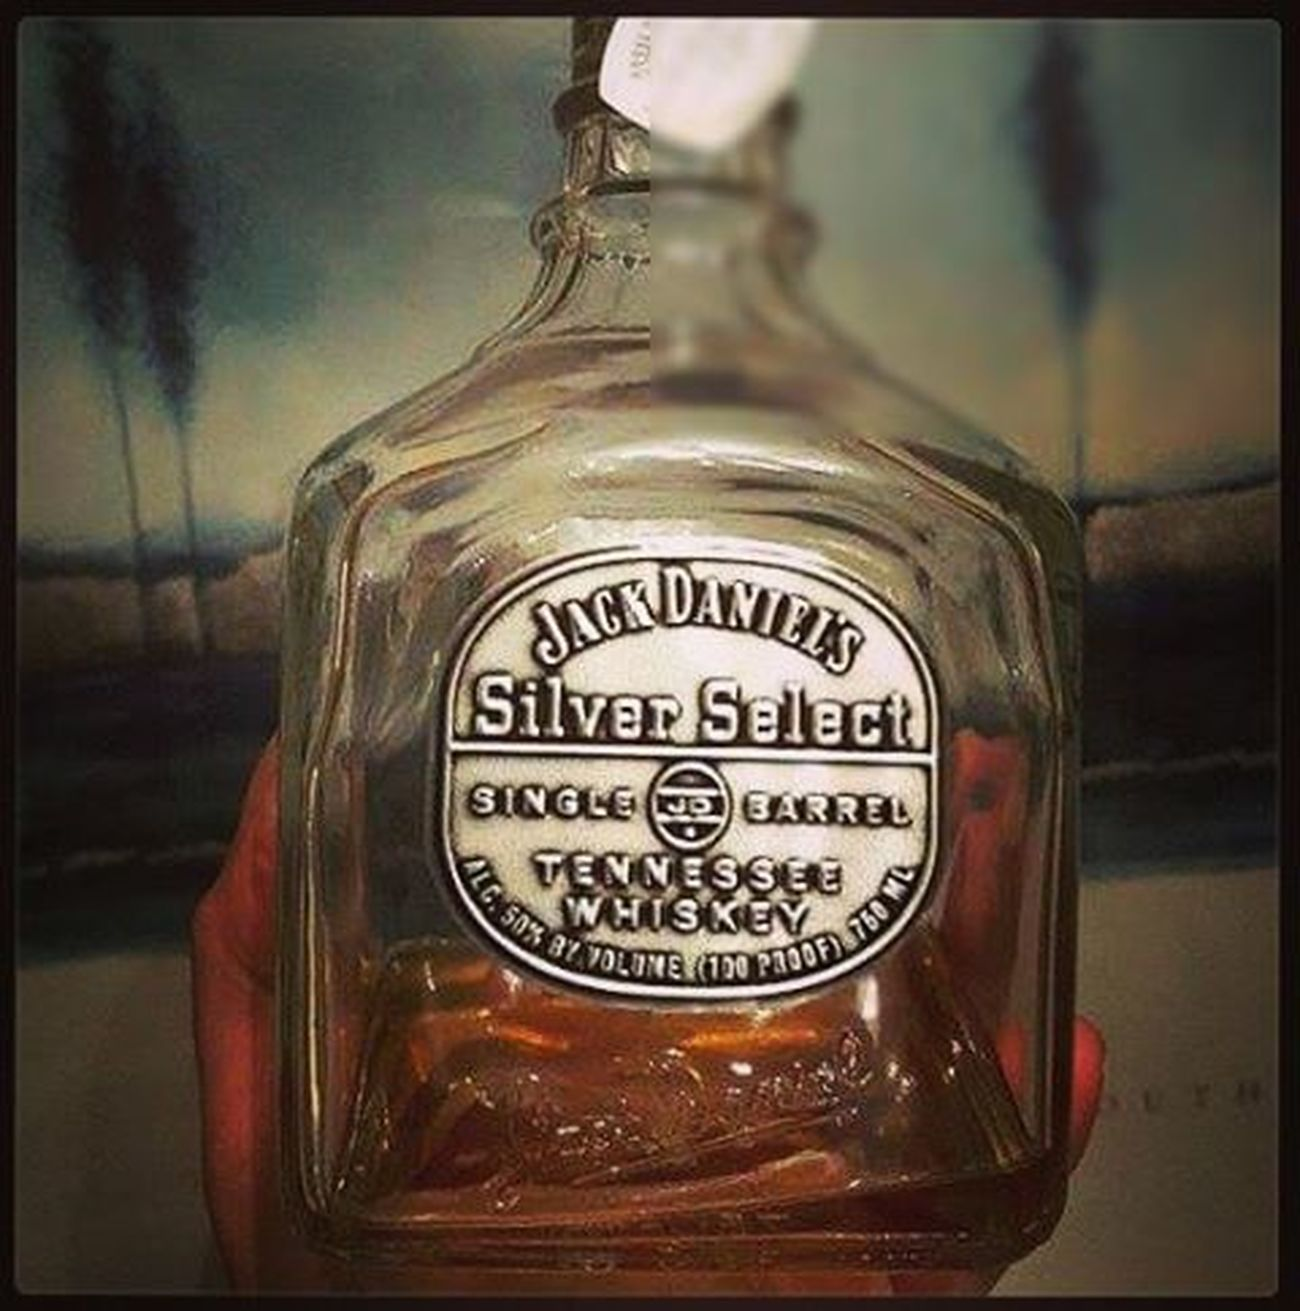 I will beat this cold JD Jack Jackdaniels Sınglebarrel Bourbon Booze Alcohol Smooth Mellow Medicinal